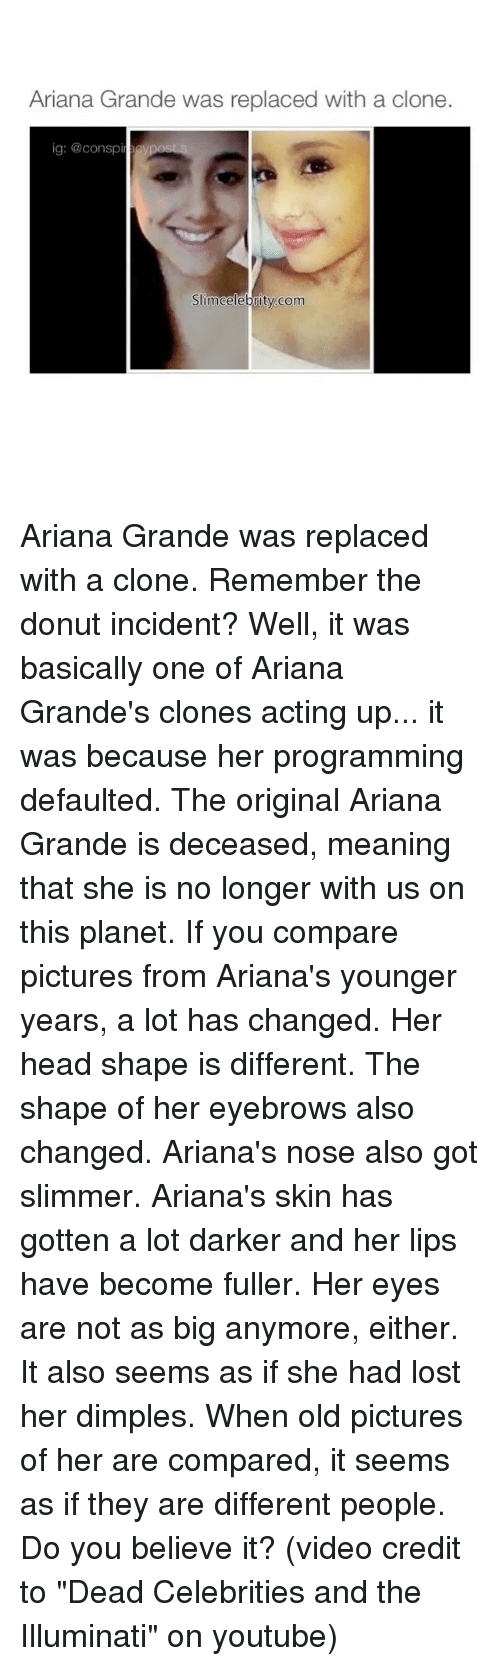 "Ariana Grande, Head, and Illuminati: Ariana Grande was replaced with a clone.  ig: @conspir  SimCelebrity com Ariana Grande was replaced with a clone. Remember the donut incident? Well, it was basically one of Ariana Grande's clones acting up... it was because her programming defaulted. The original Ariana Grande is deceased, meaning that she is no longer with us on this planet. If you compare pictures from Ariana's younger years, a lot has changed. Her head shape is different. The shape of her eyebrows also changed. Ariana's nose also got slimmer. Ariana's skin has gotten a lot darker and her lips have become fuller. Her eyes are not as big anymore, either. It also seems as if she had lost her dimples. When old pictures of her are compared, it seems as if they are different people. Do you believe it? (video credit to ""Dead Celebrities and the Illuminati"" on youtube)"